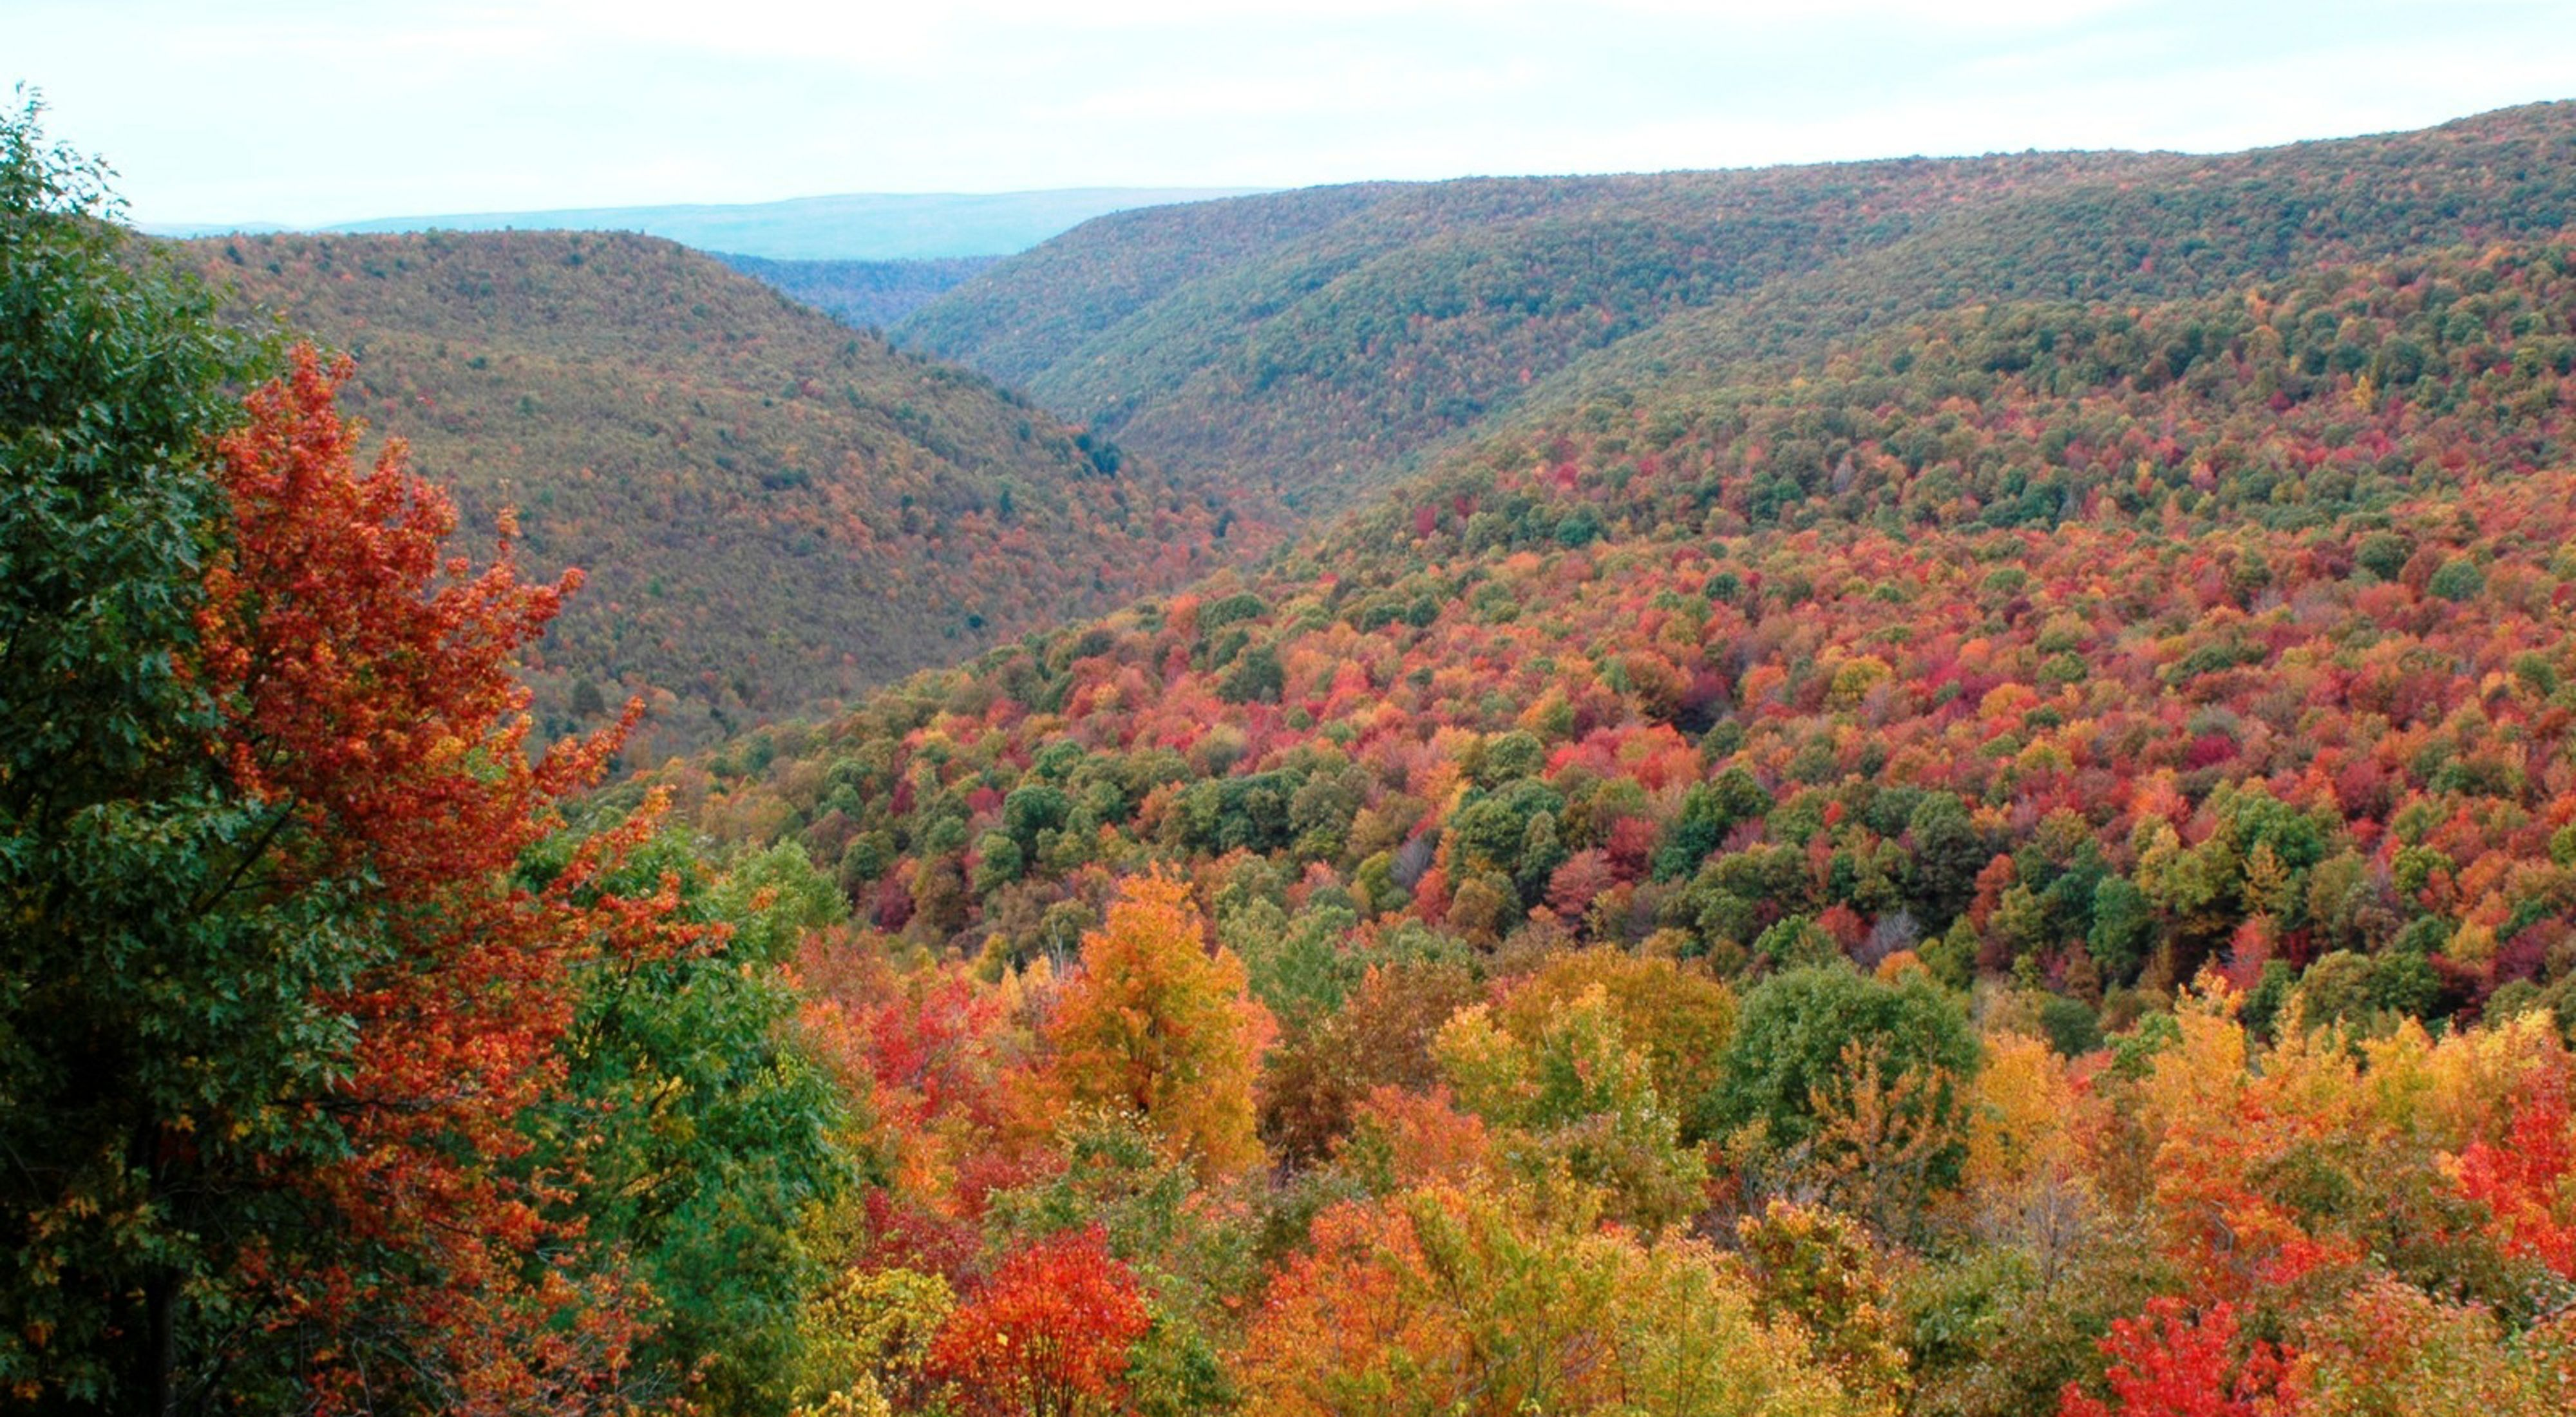 Rolling mountain ridges covered in forests. The leaves show bright autumn colors of red, gold and orange.